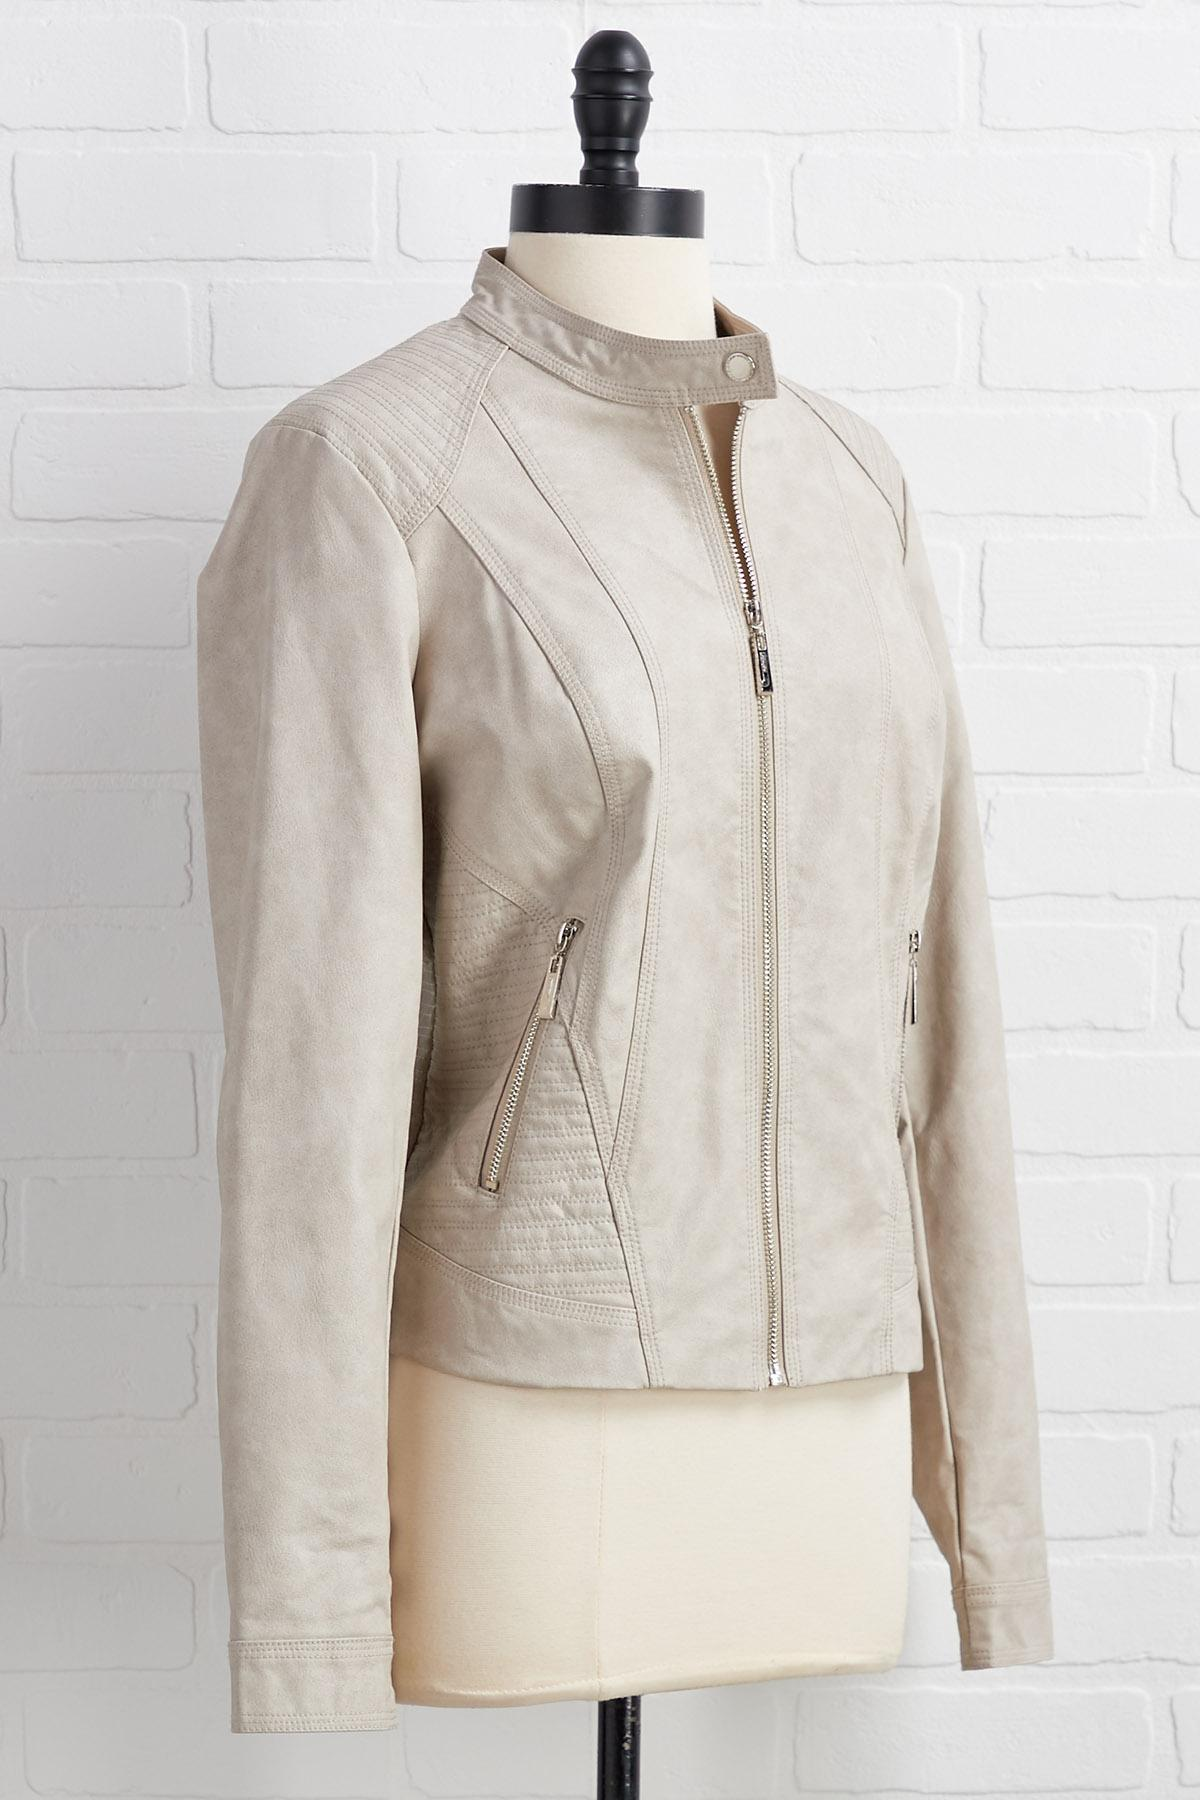 Over The Top Jacket